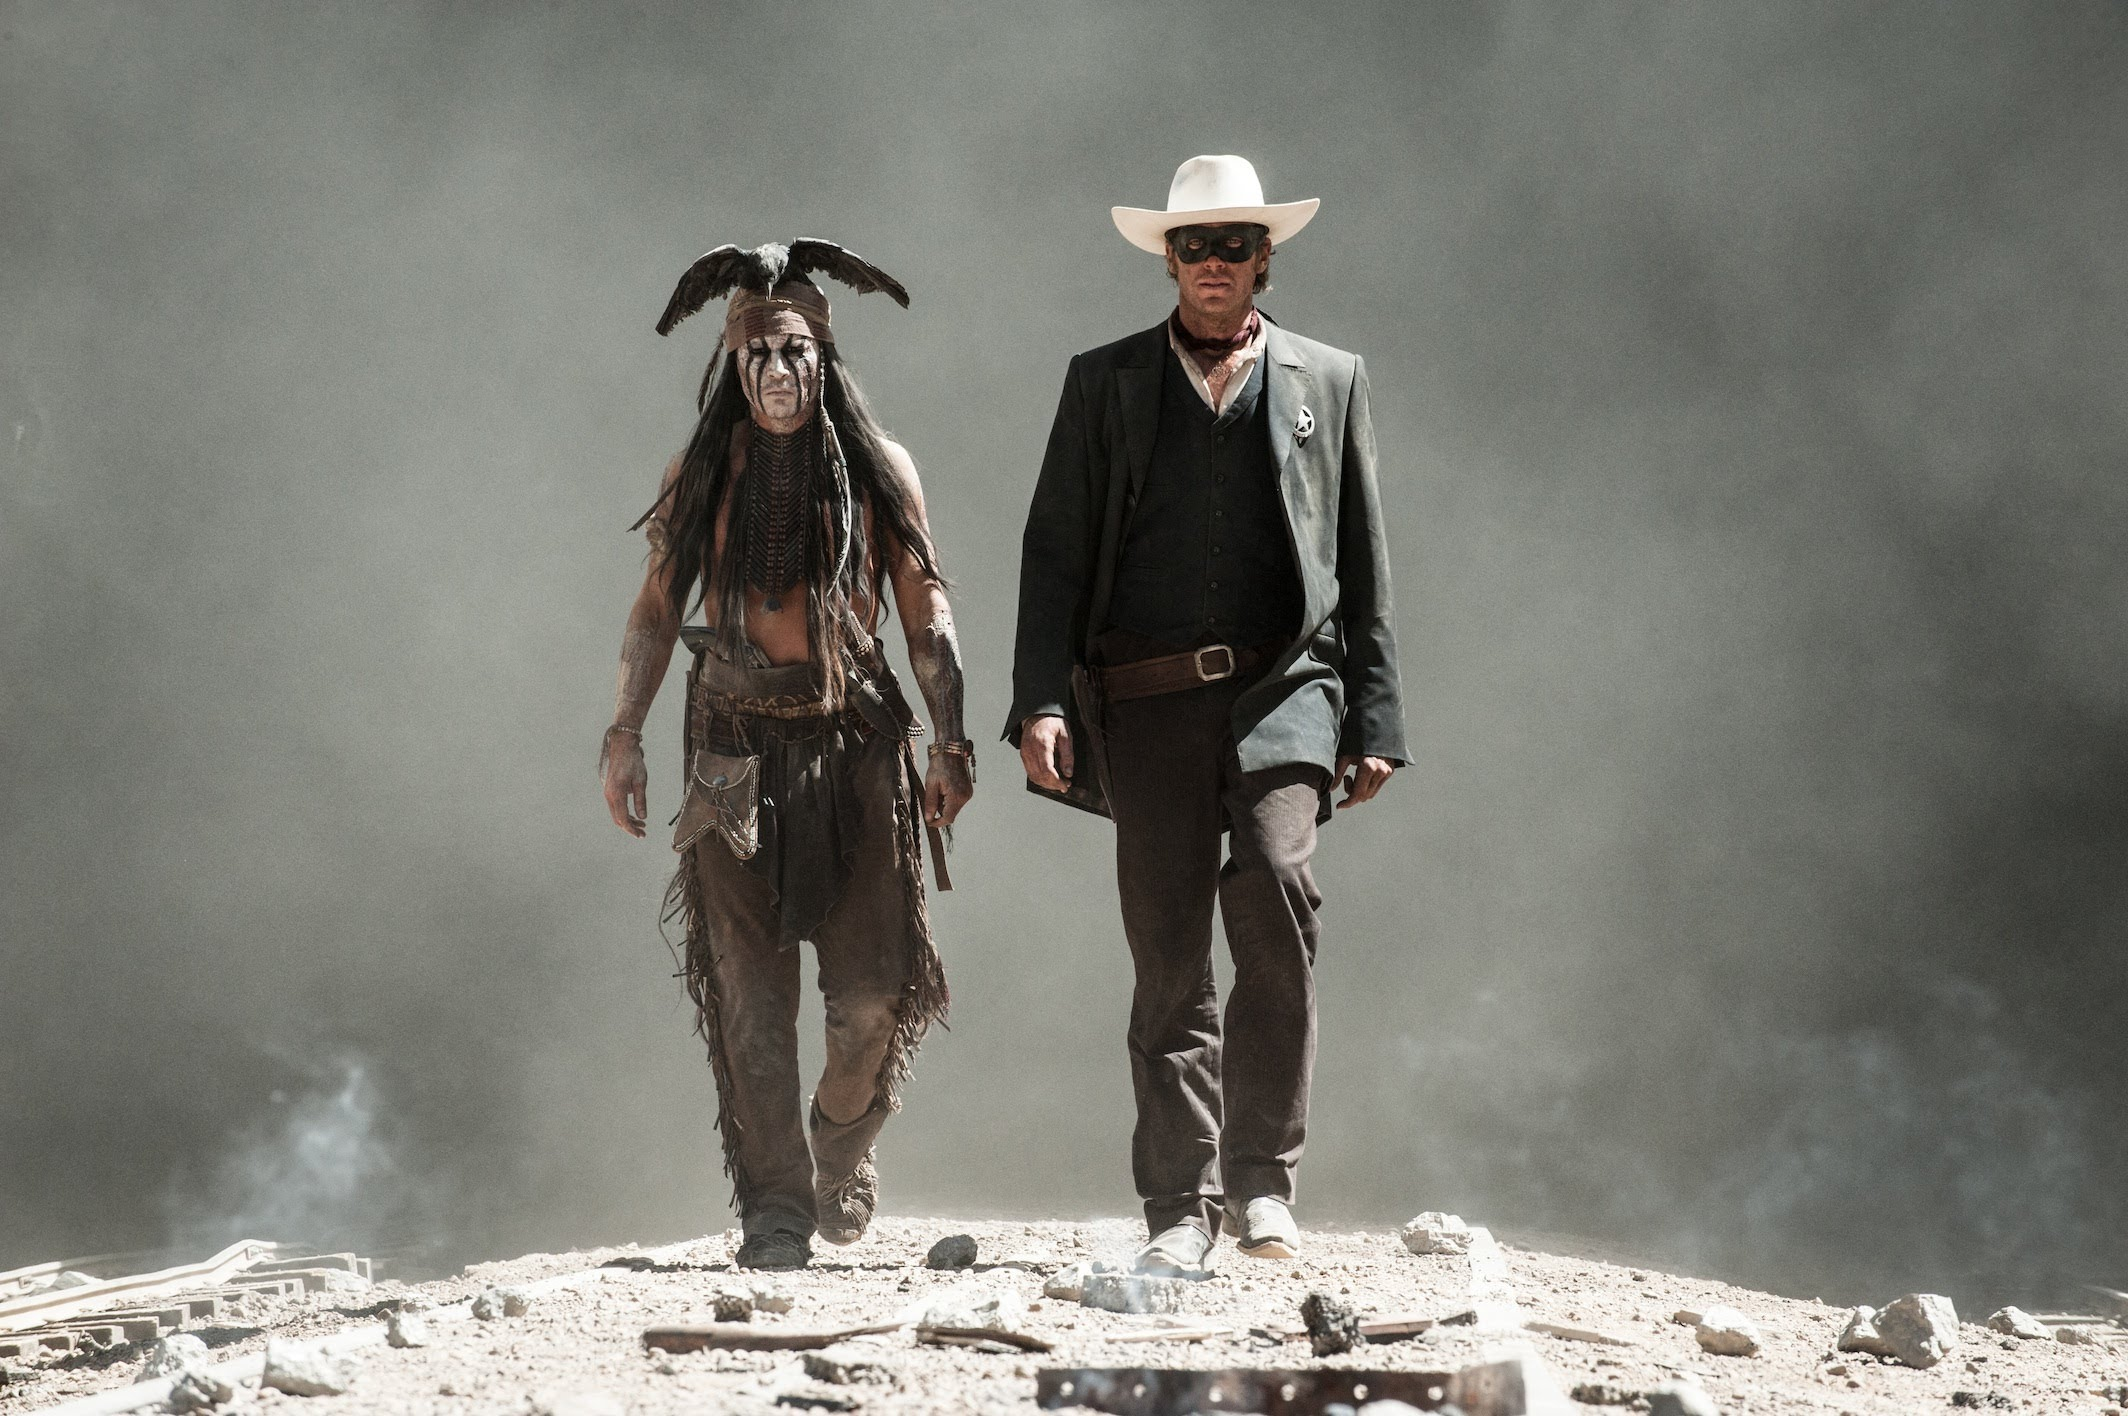 HQ The Lone Ranger Wallpapers | File 553.28Kb